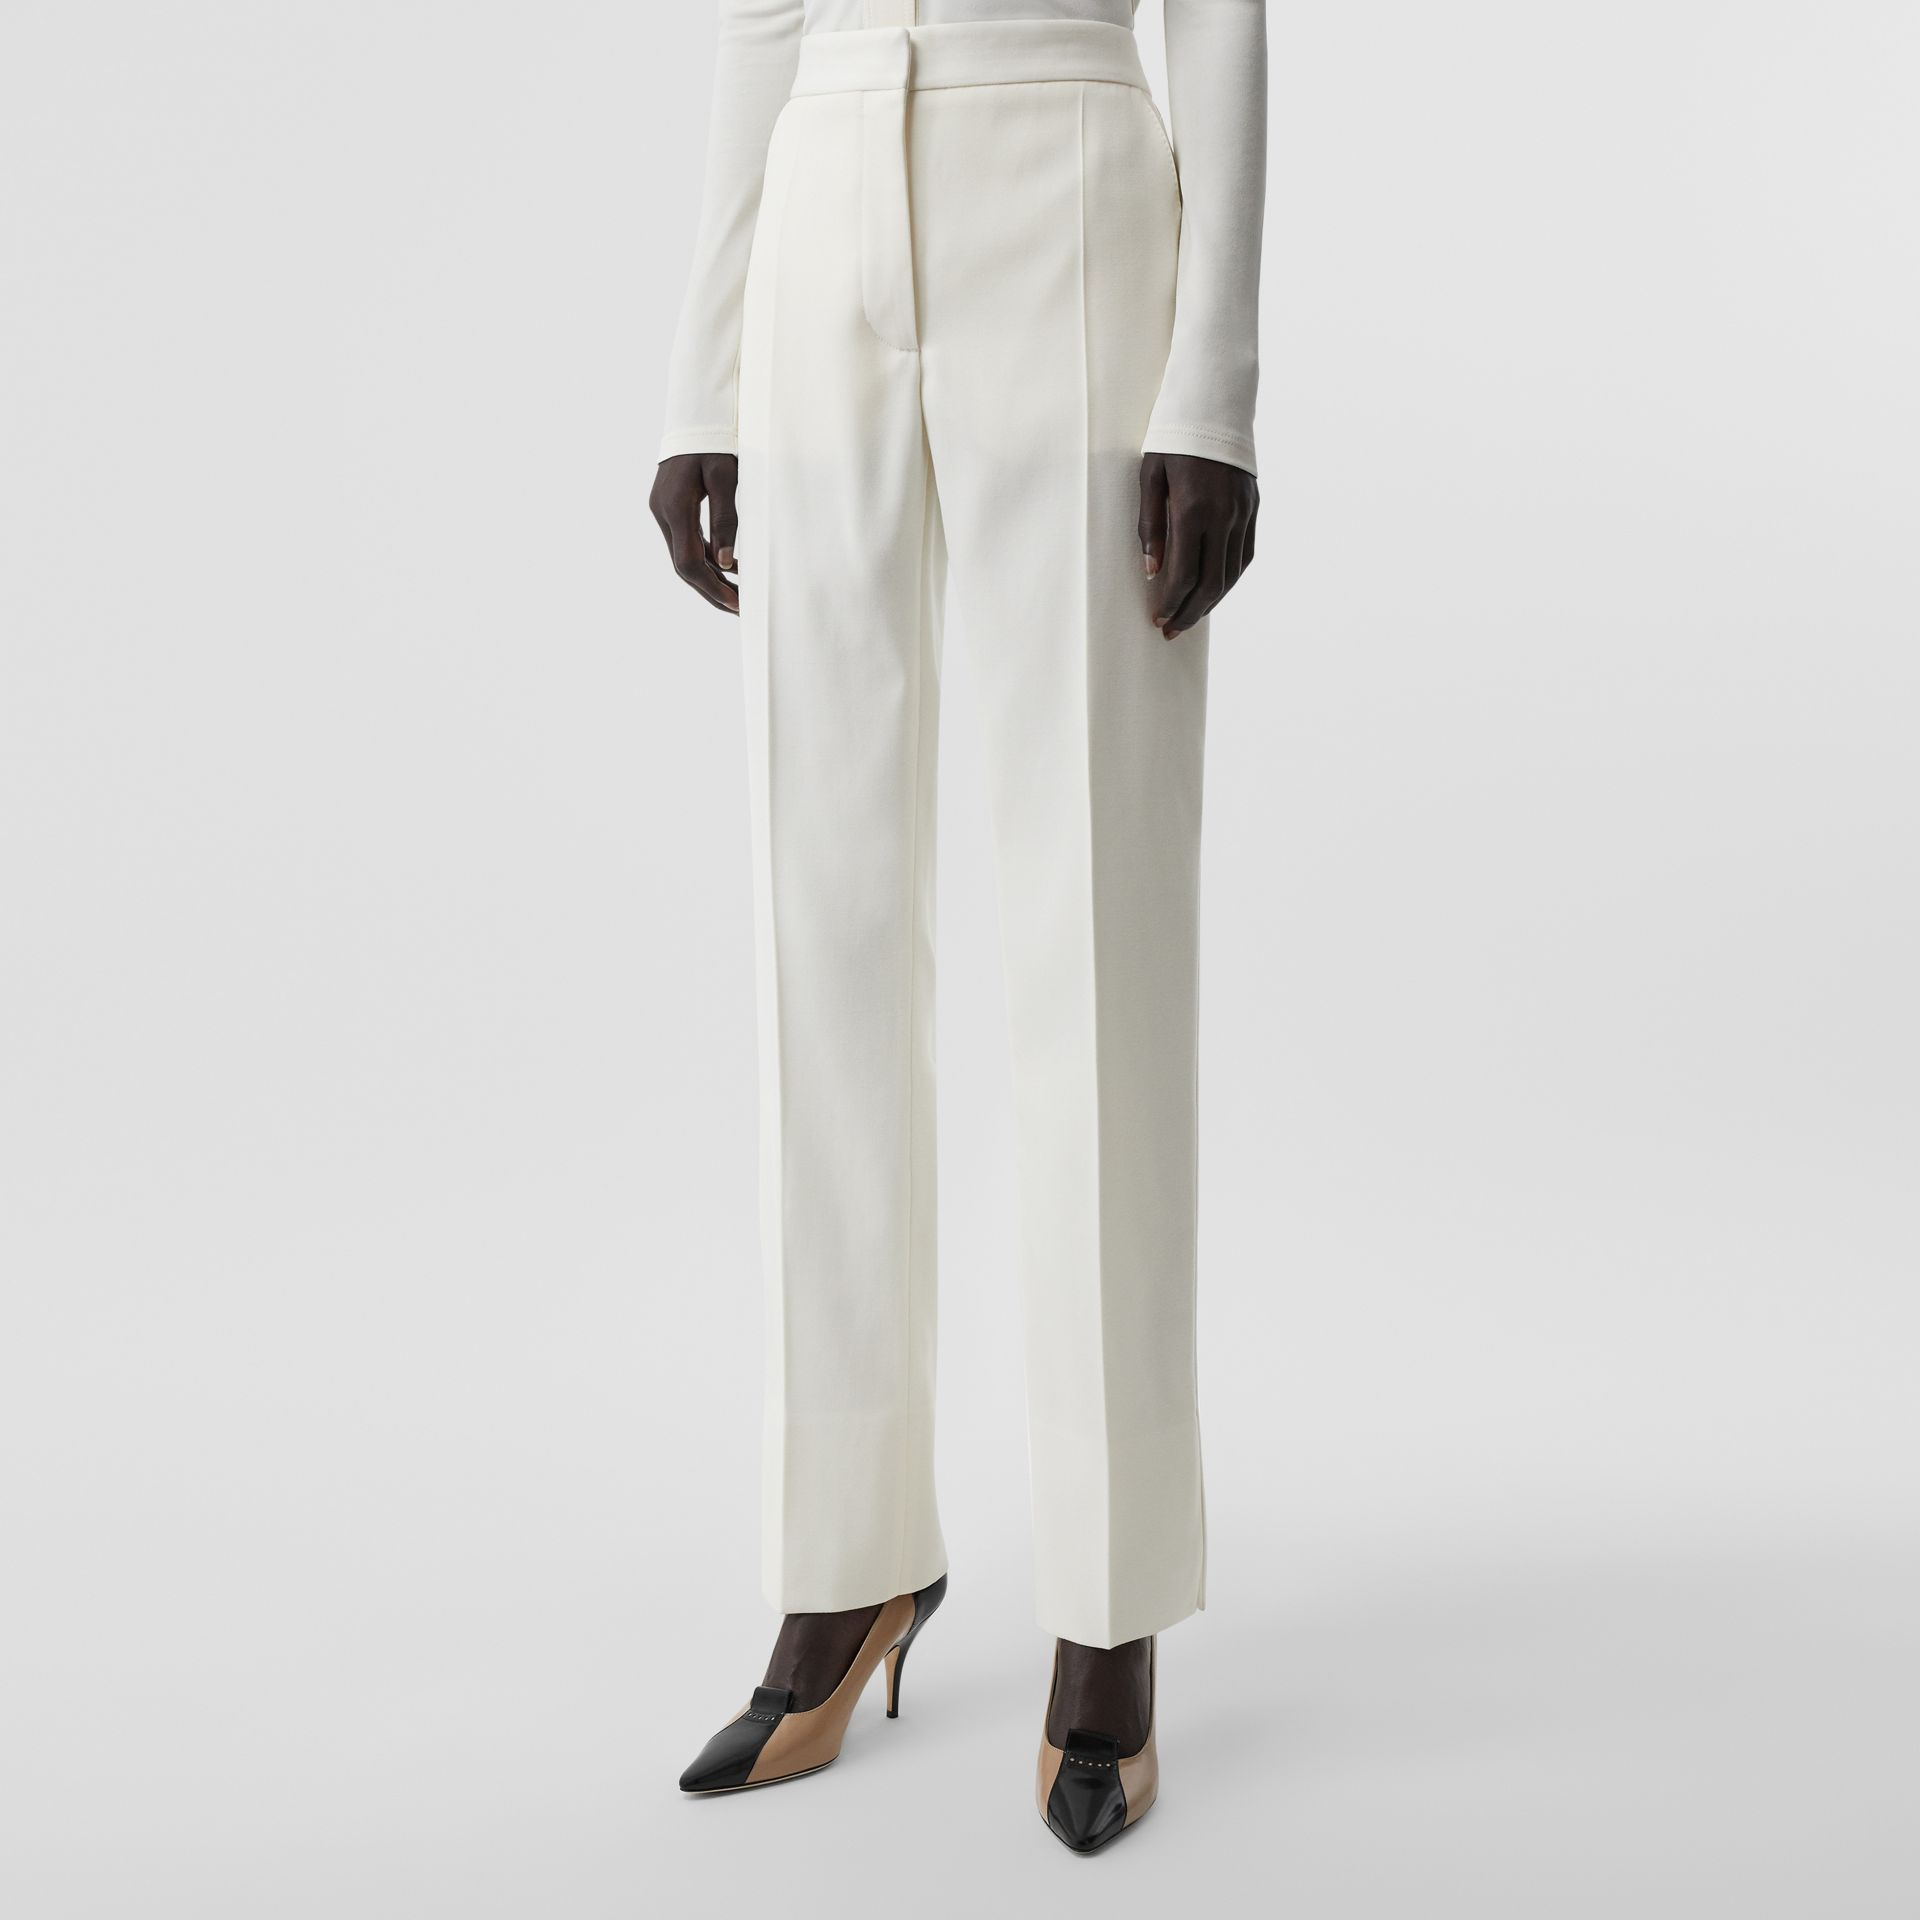 Satin Stripe Detail Wool Tailored Trousers in Natural White - Women | Burberry United Kingdom - gallery image 4